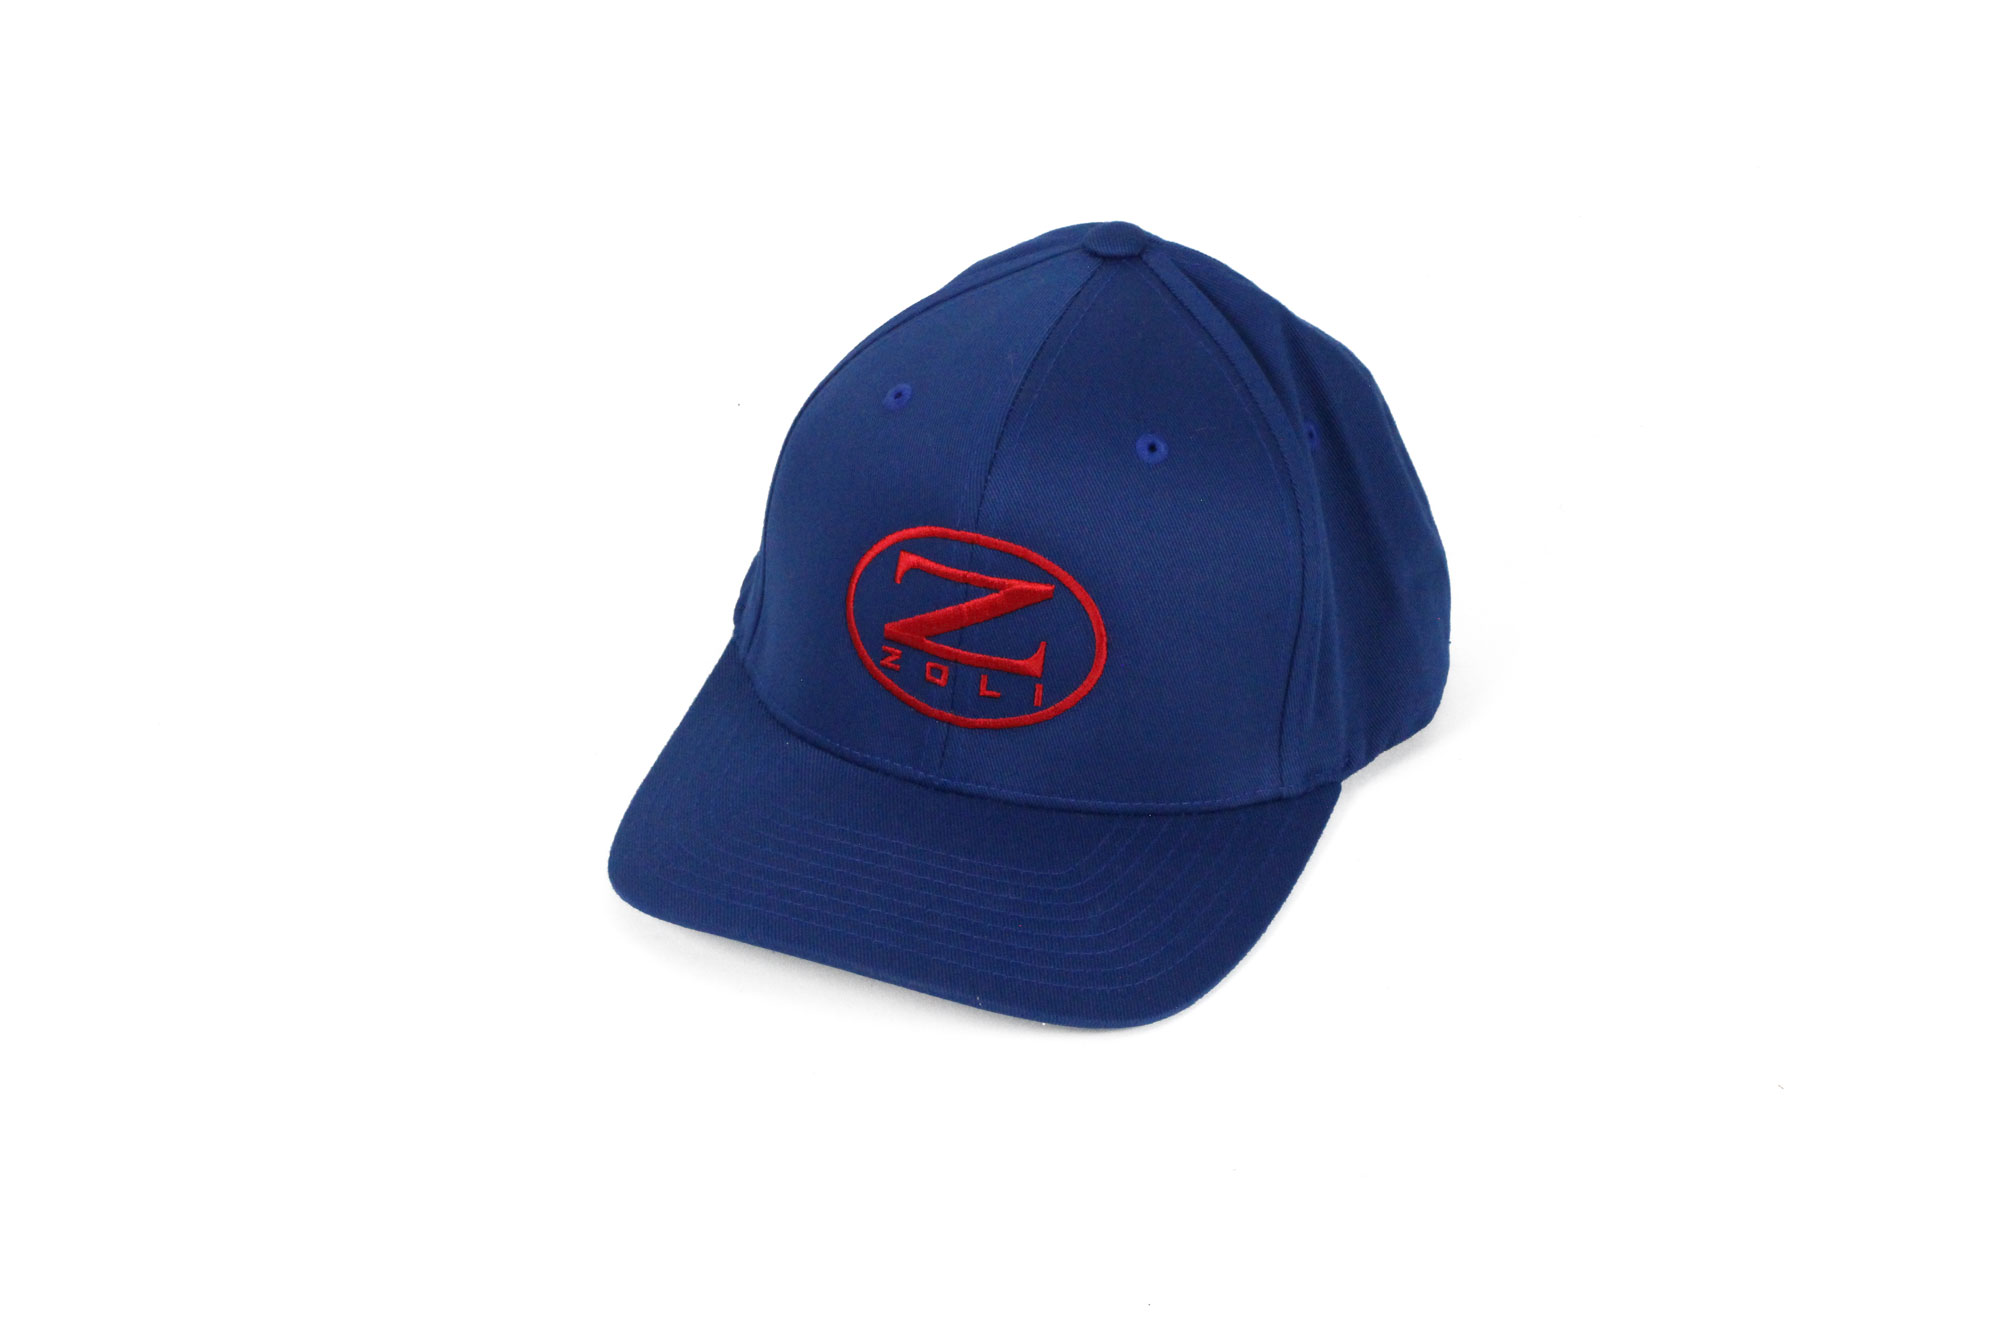 Zoli Embroidered Flexfit® Hat (Royal Blue)